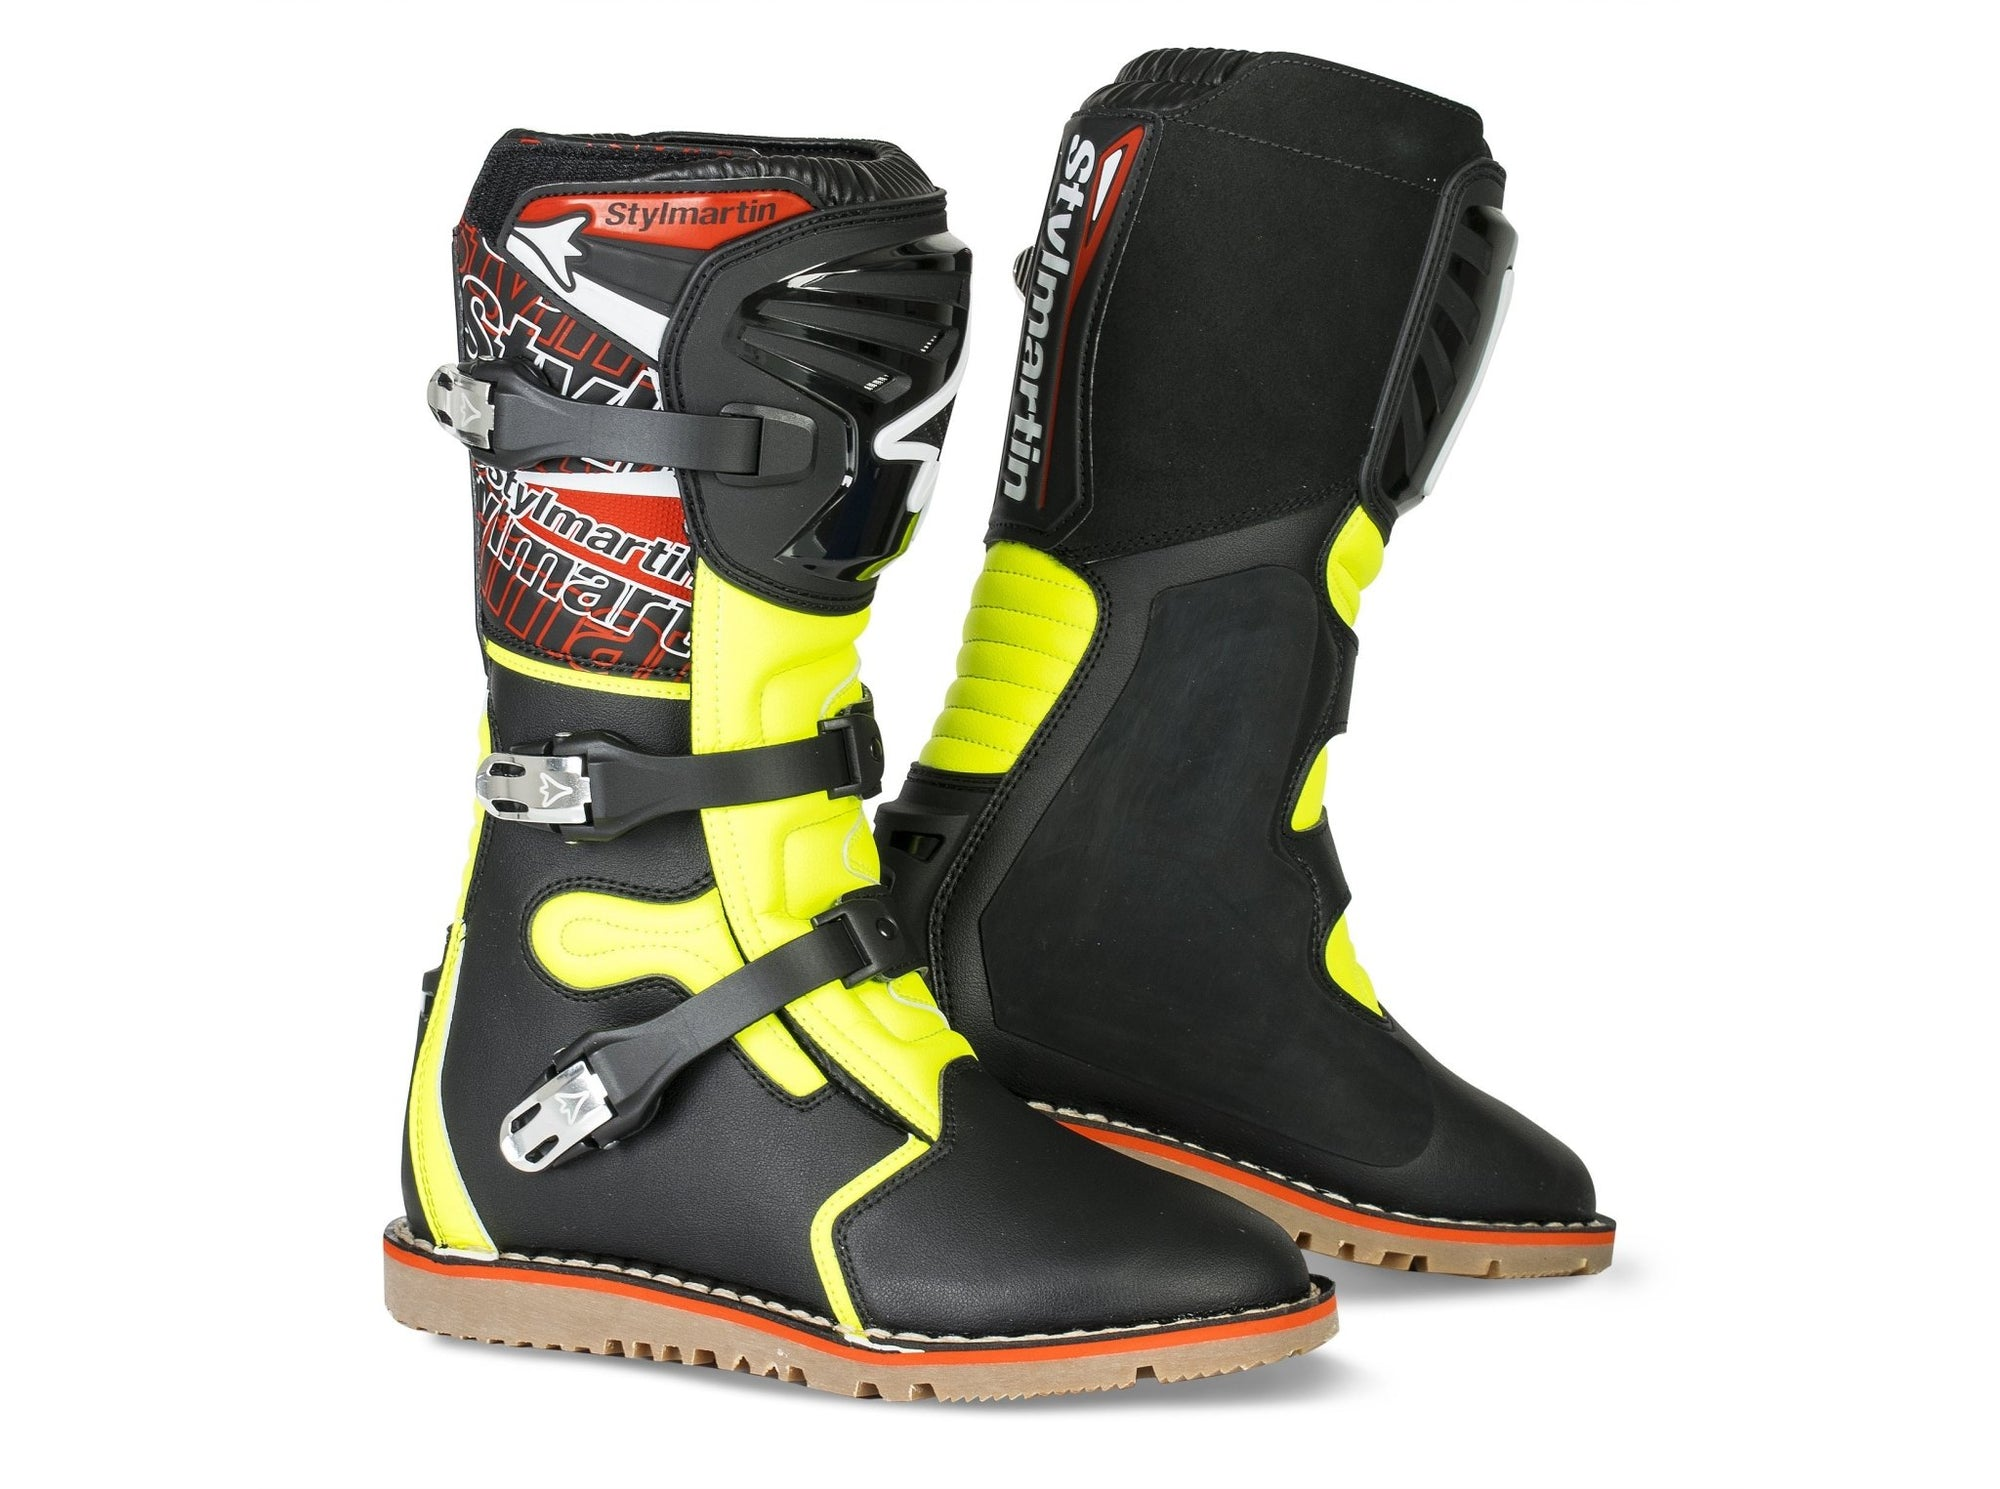 Stylmartin - Stylmartin Impact Pro WP Off Road in Black and Yellow - Boots - Salt Flats Clothing